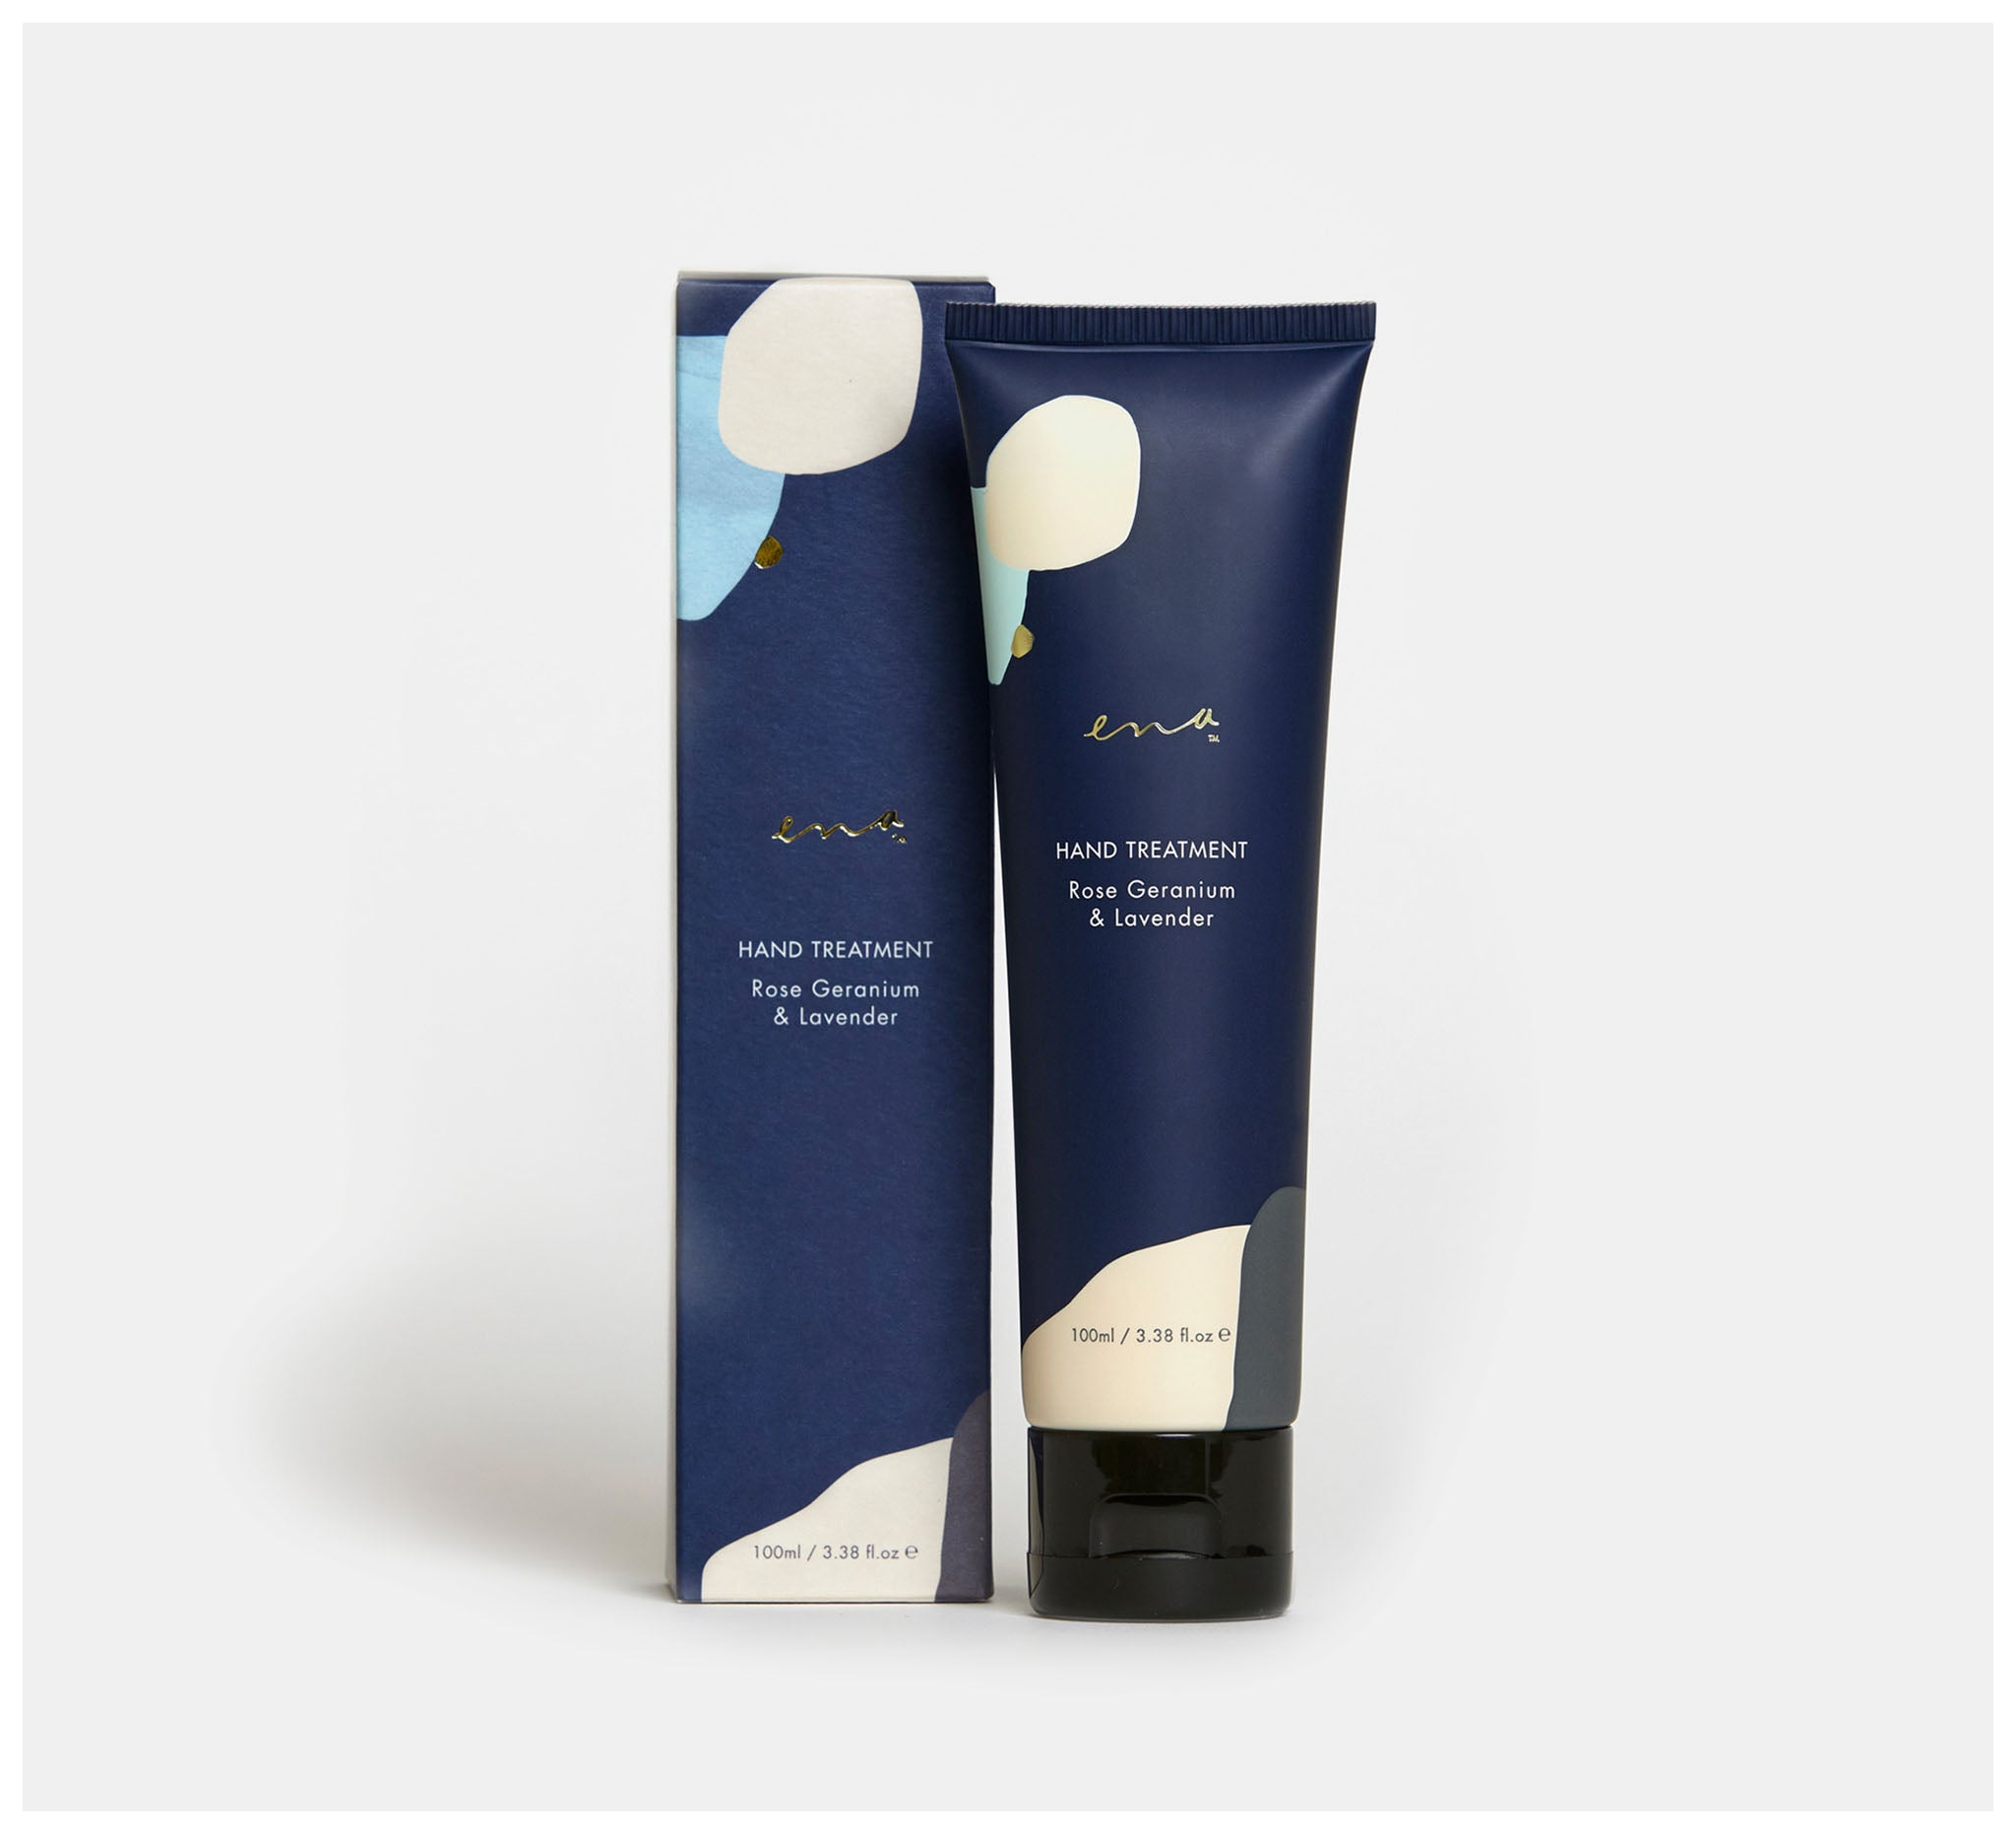 Ena Products -  Hand Treatment - Rose Geranium & Lavender